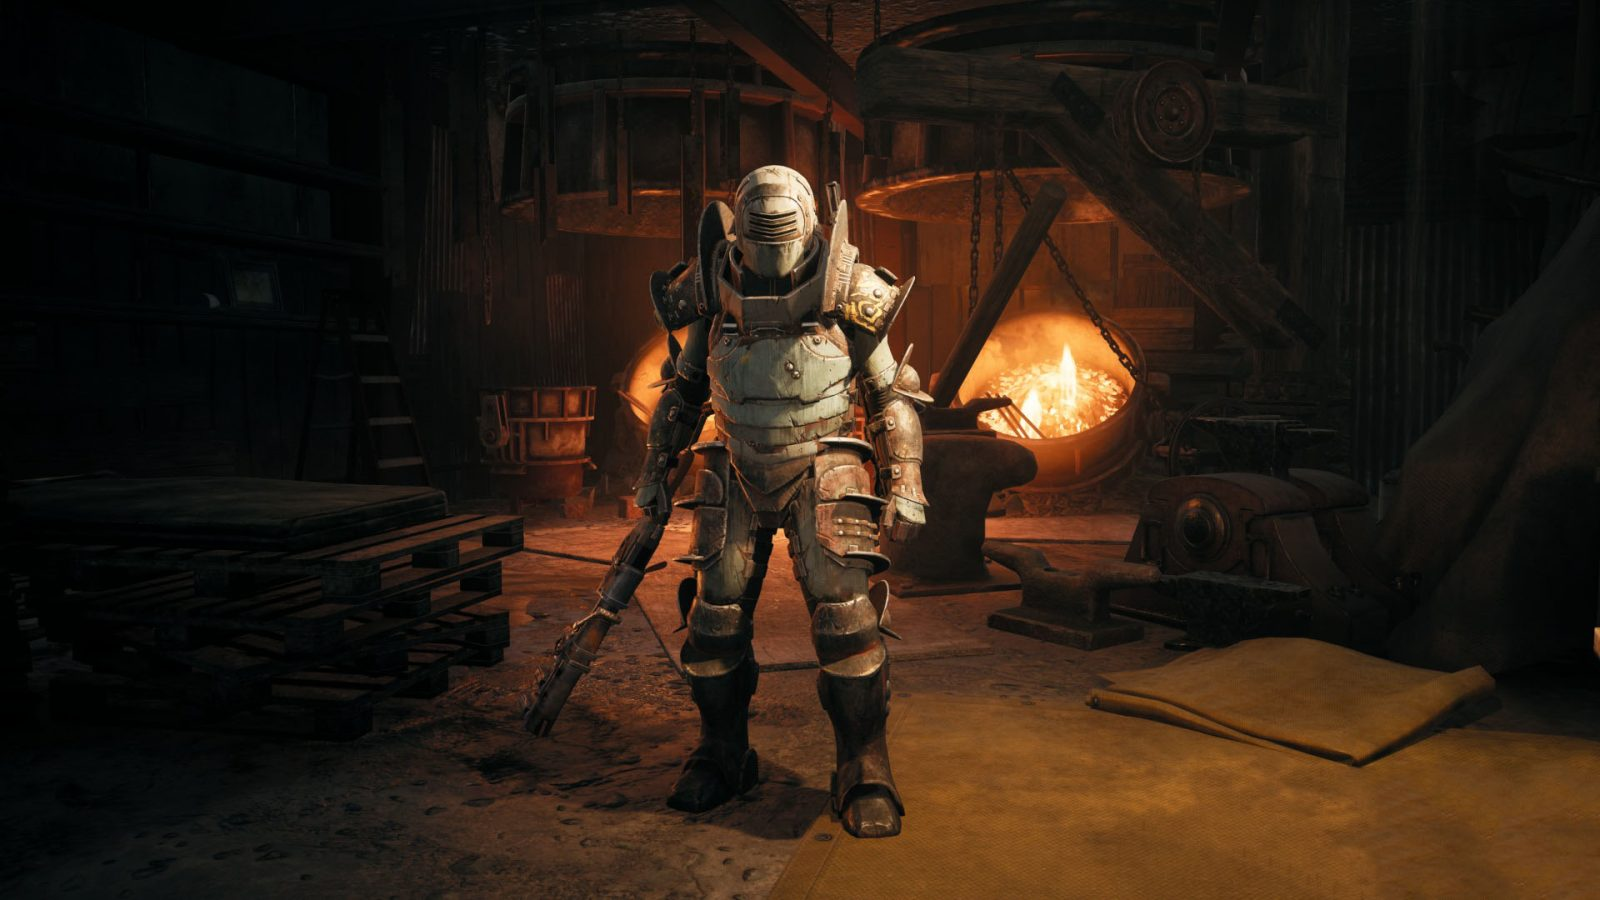 New Trailer for Remnant: From the Ashes Introduces the Leto's Lab Dungeon